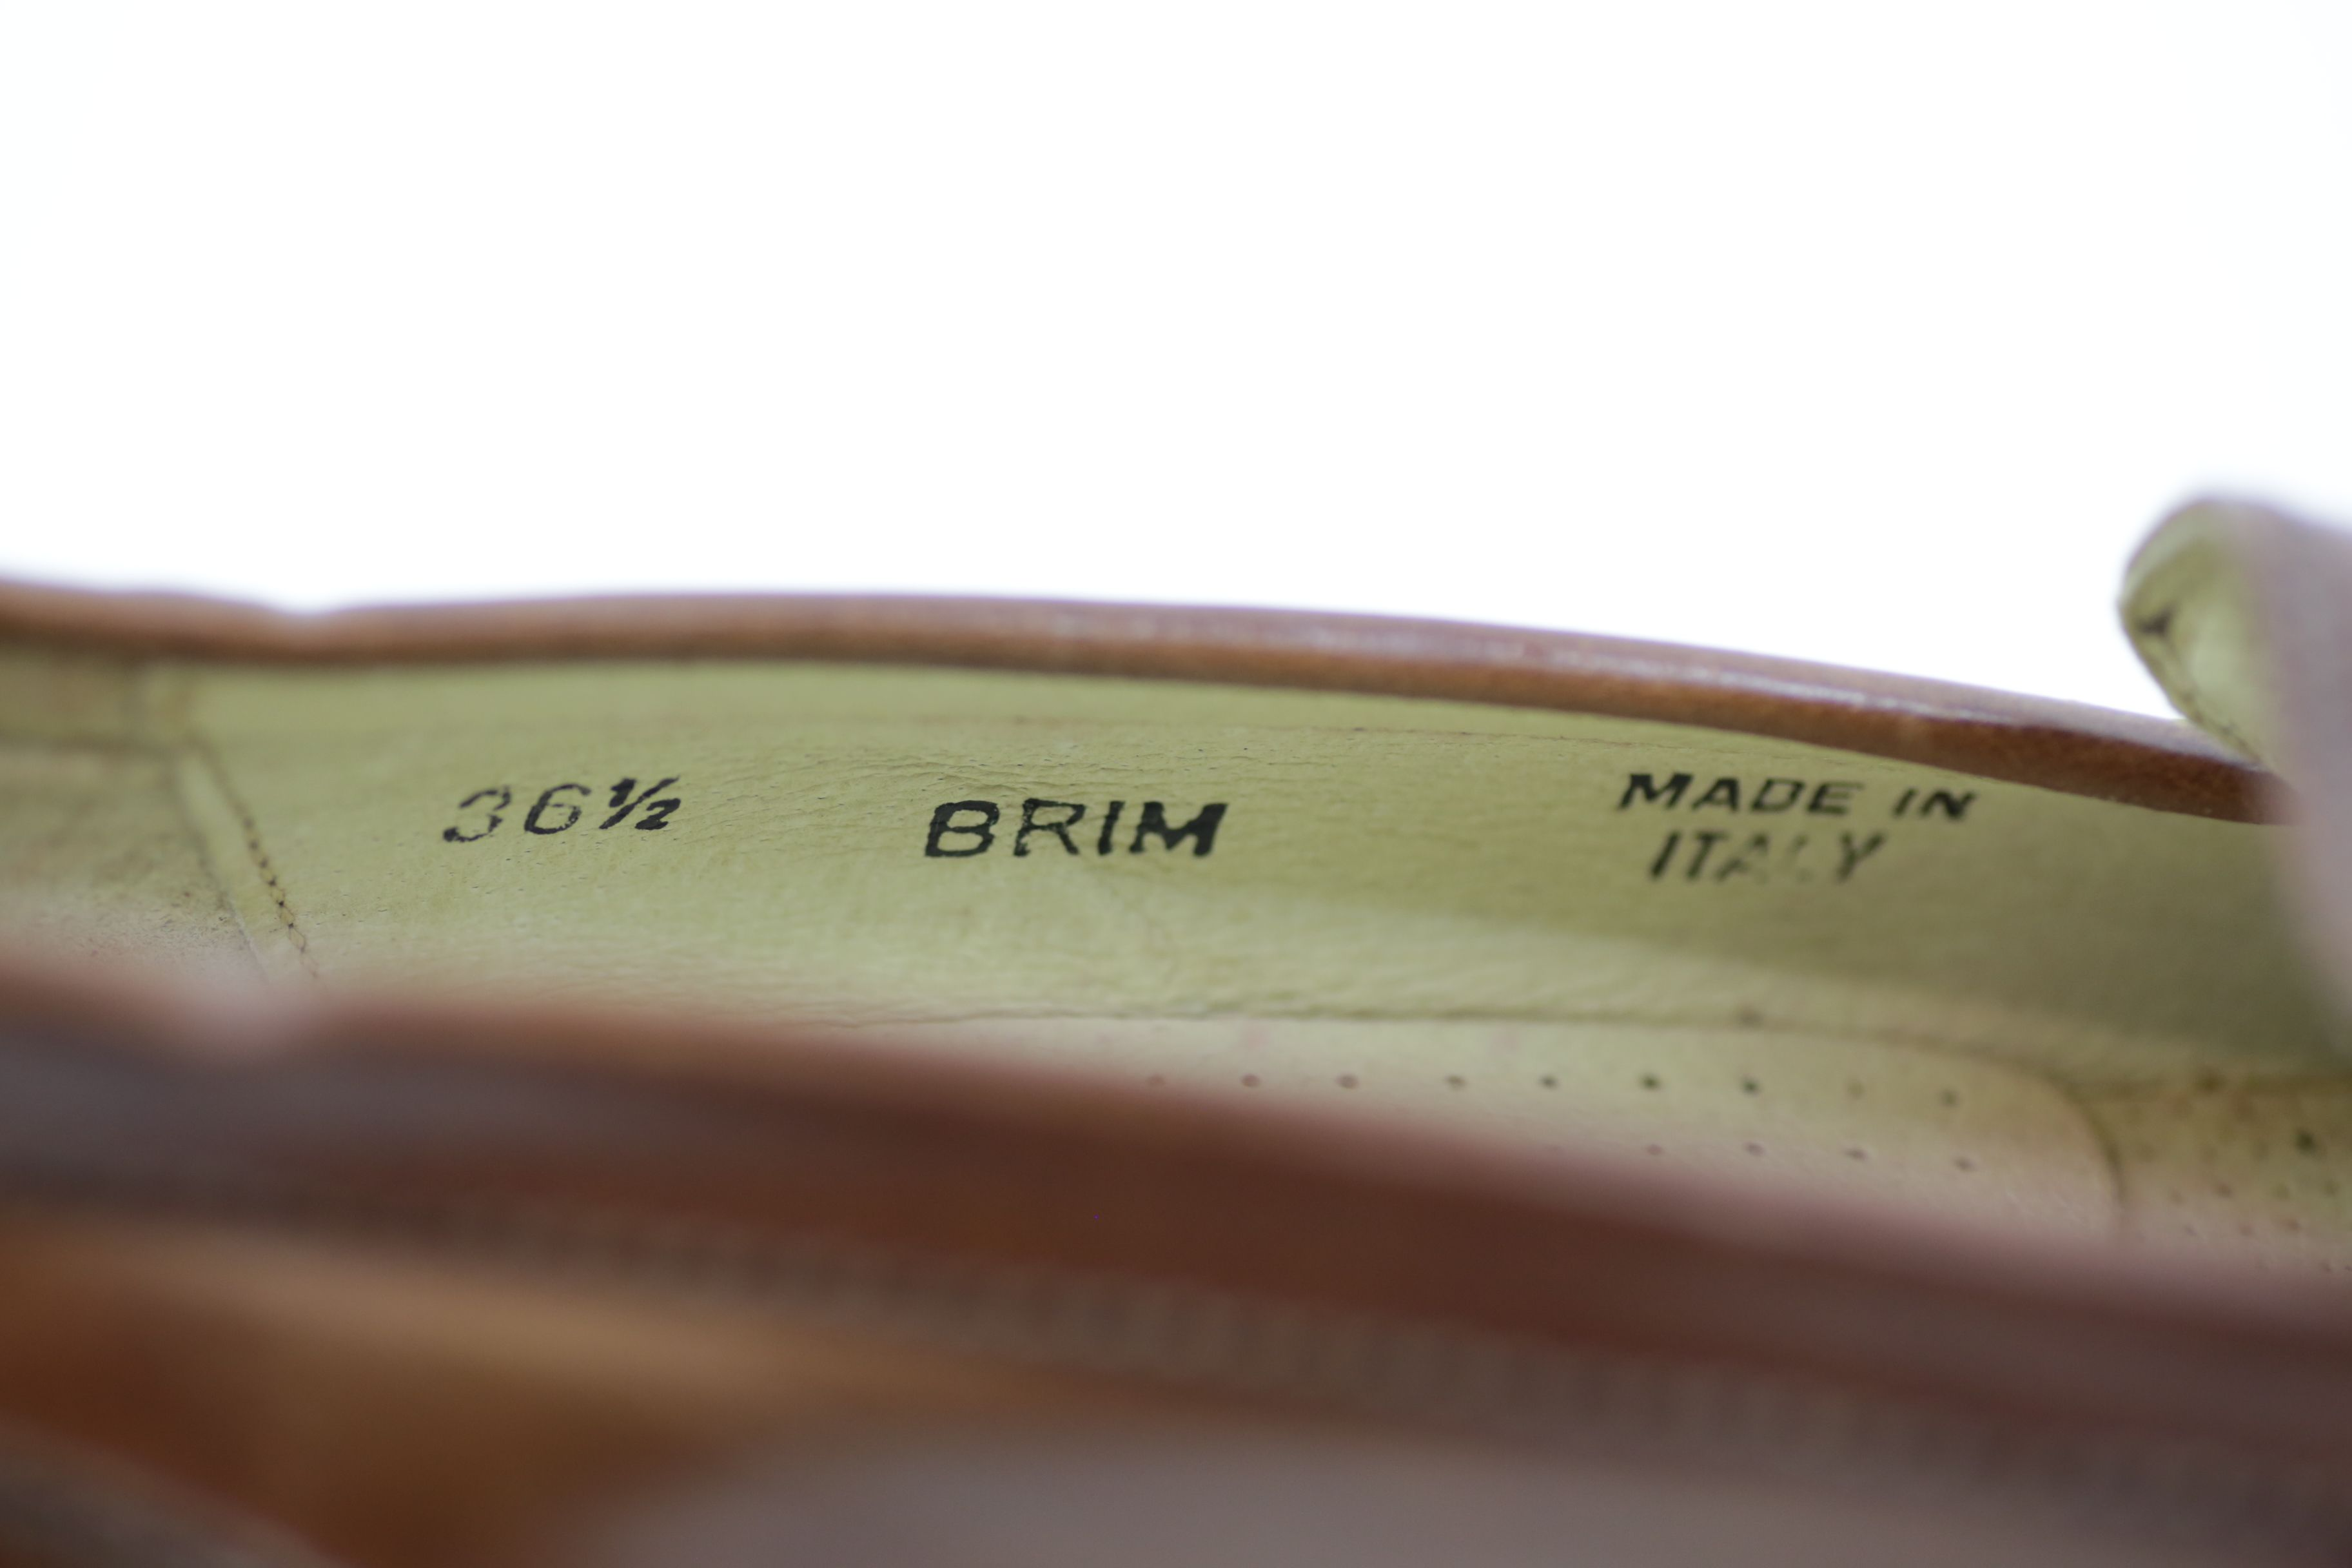 Bally Brim Classic Mid Brown Leather Shoes / Loafers - Size EU 36.5 UK 3.5 6